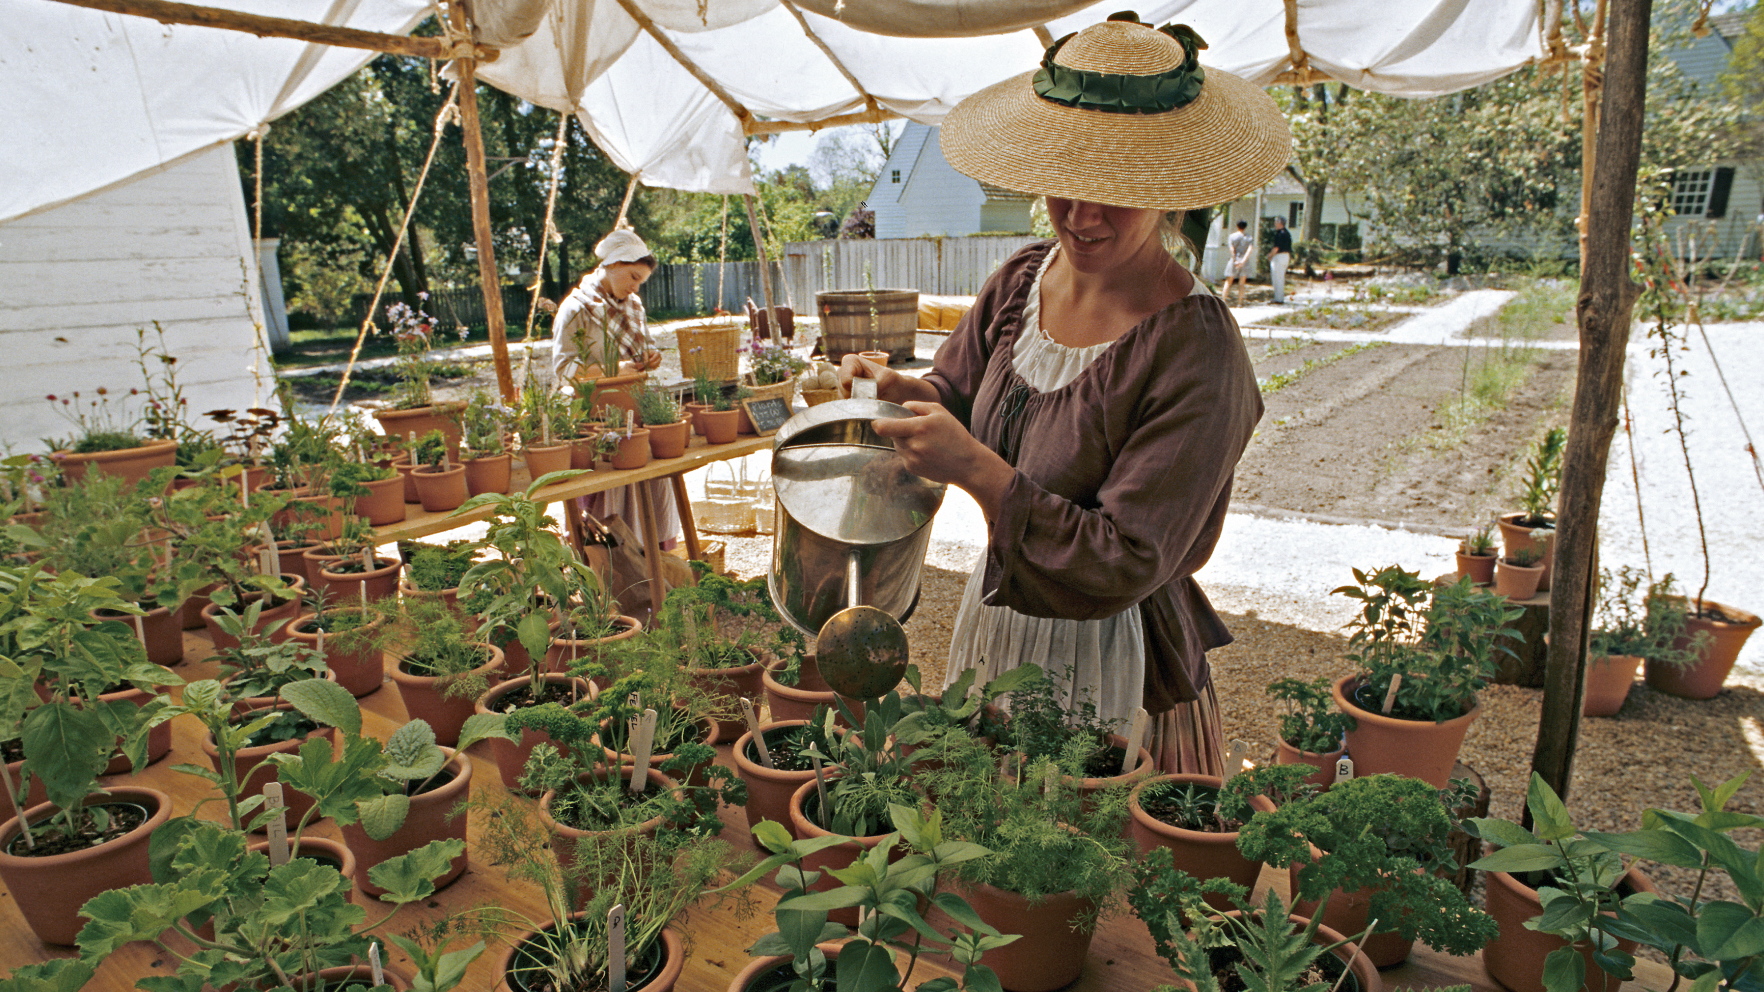 At Colonial Williamsburg's garden and nursery, which is open to guests, staff grow items that would have been found in gentry pleasure gardens: herbs, flowers and seasonal greens. (Colonial Williamsburg Foundation)